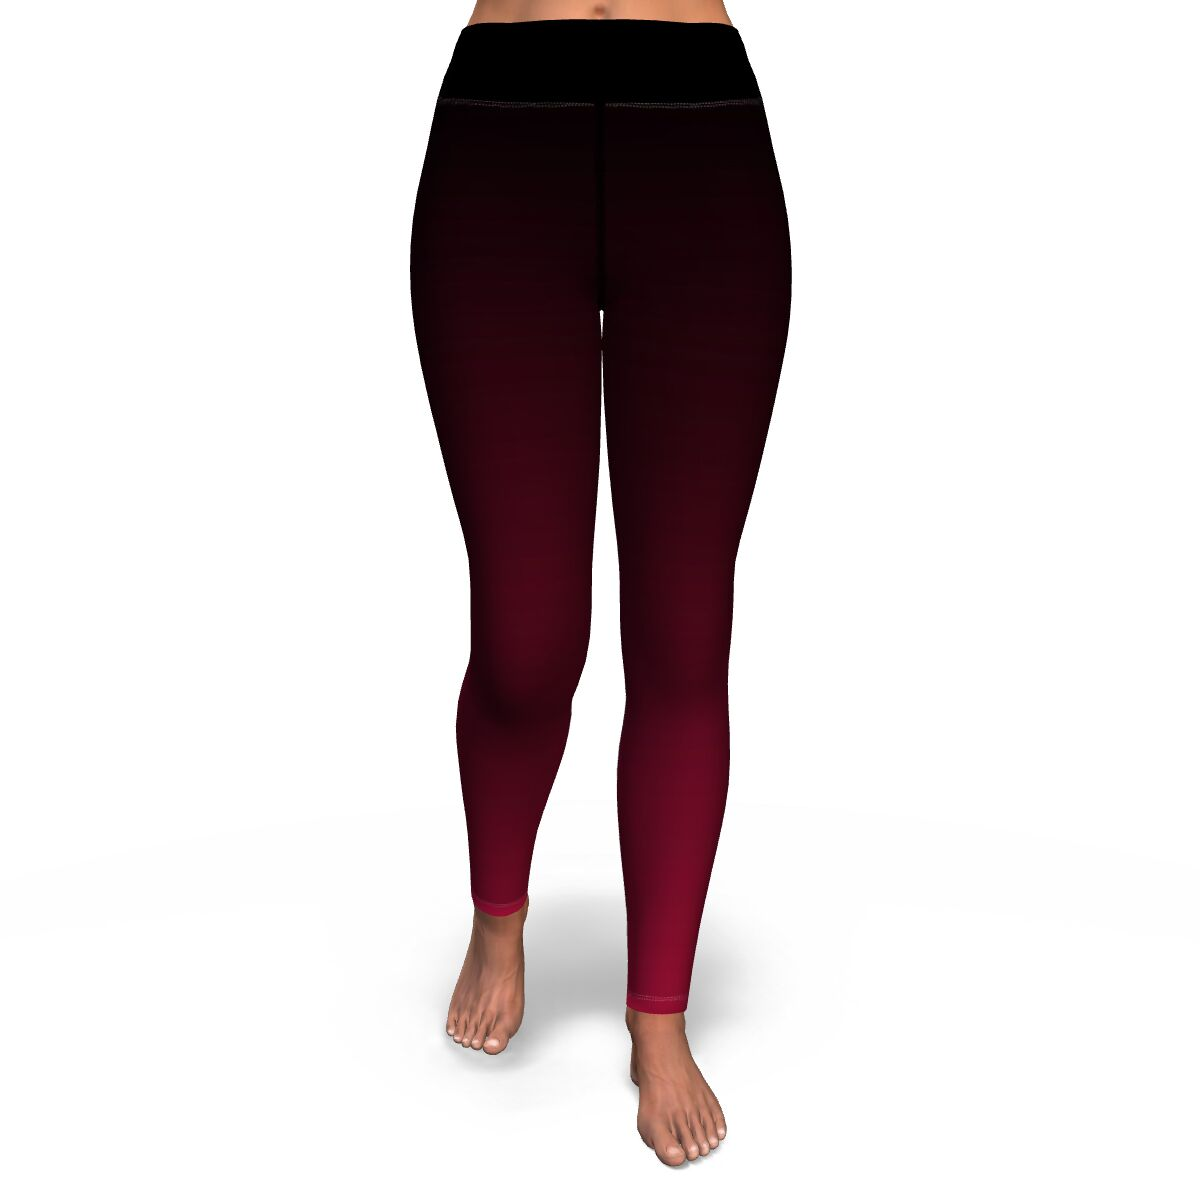 Black to Red Ombre Yoga Pants